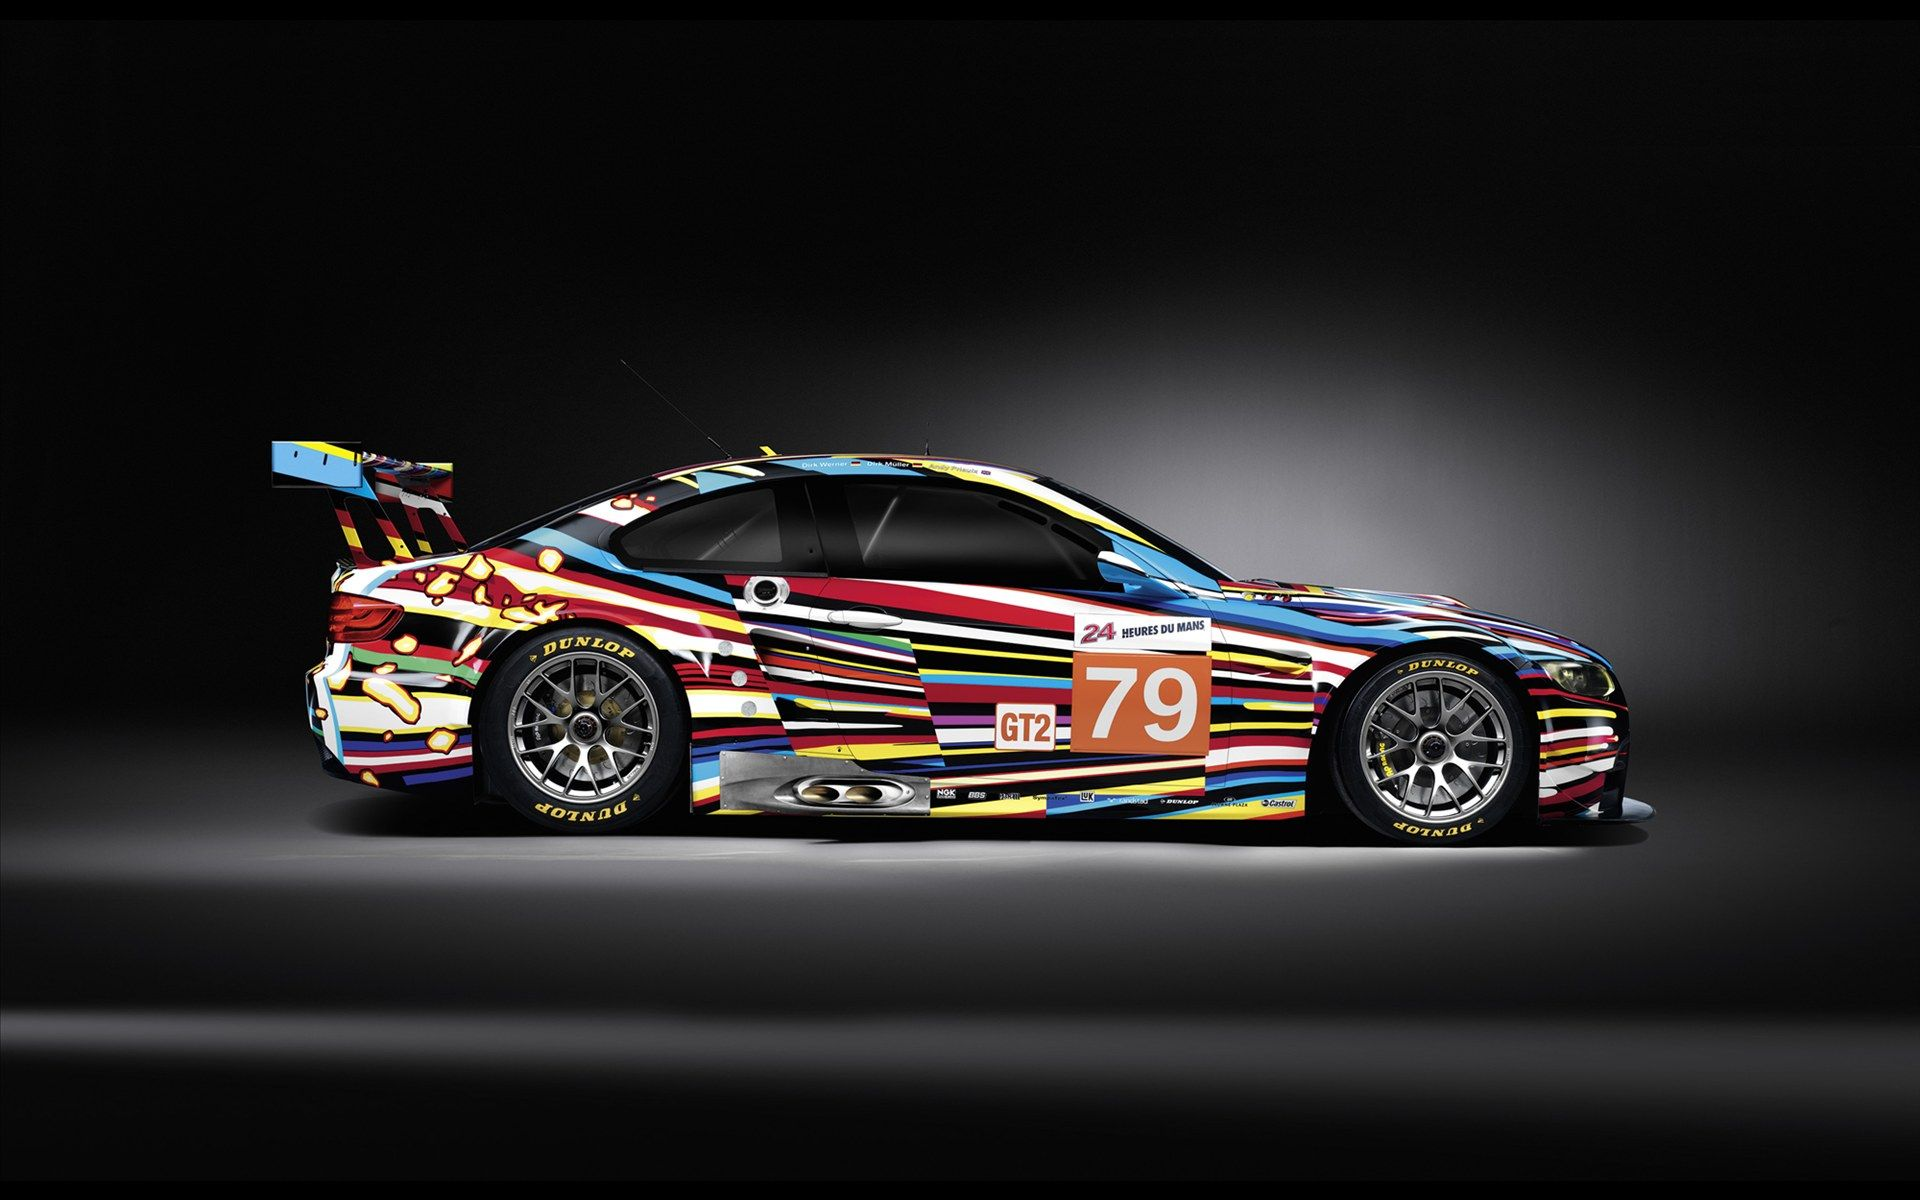 Sticker bomb car design - Stickers Bomb Sports Car With Lots Of Px Resolution 241417 Jpg 1920 1200 Racing Design Research Pinterest Cars